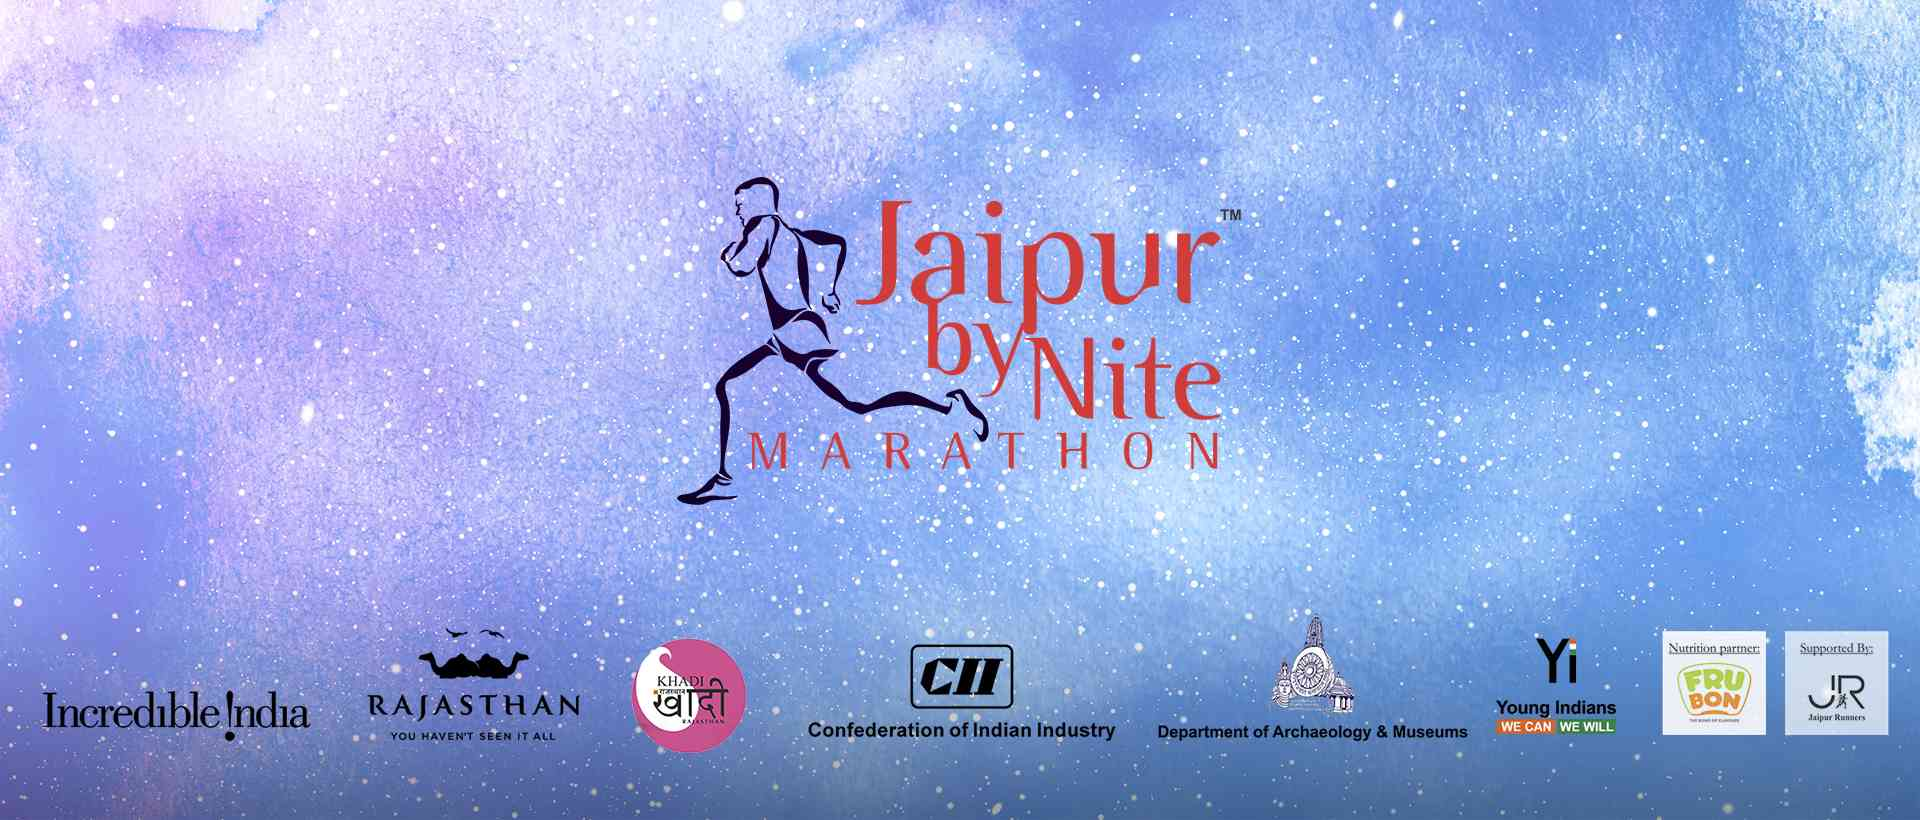 Jaipur By Nite Marathon is one of a kind night marathon.